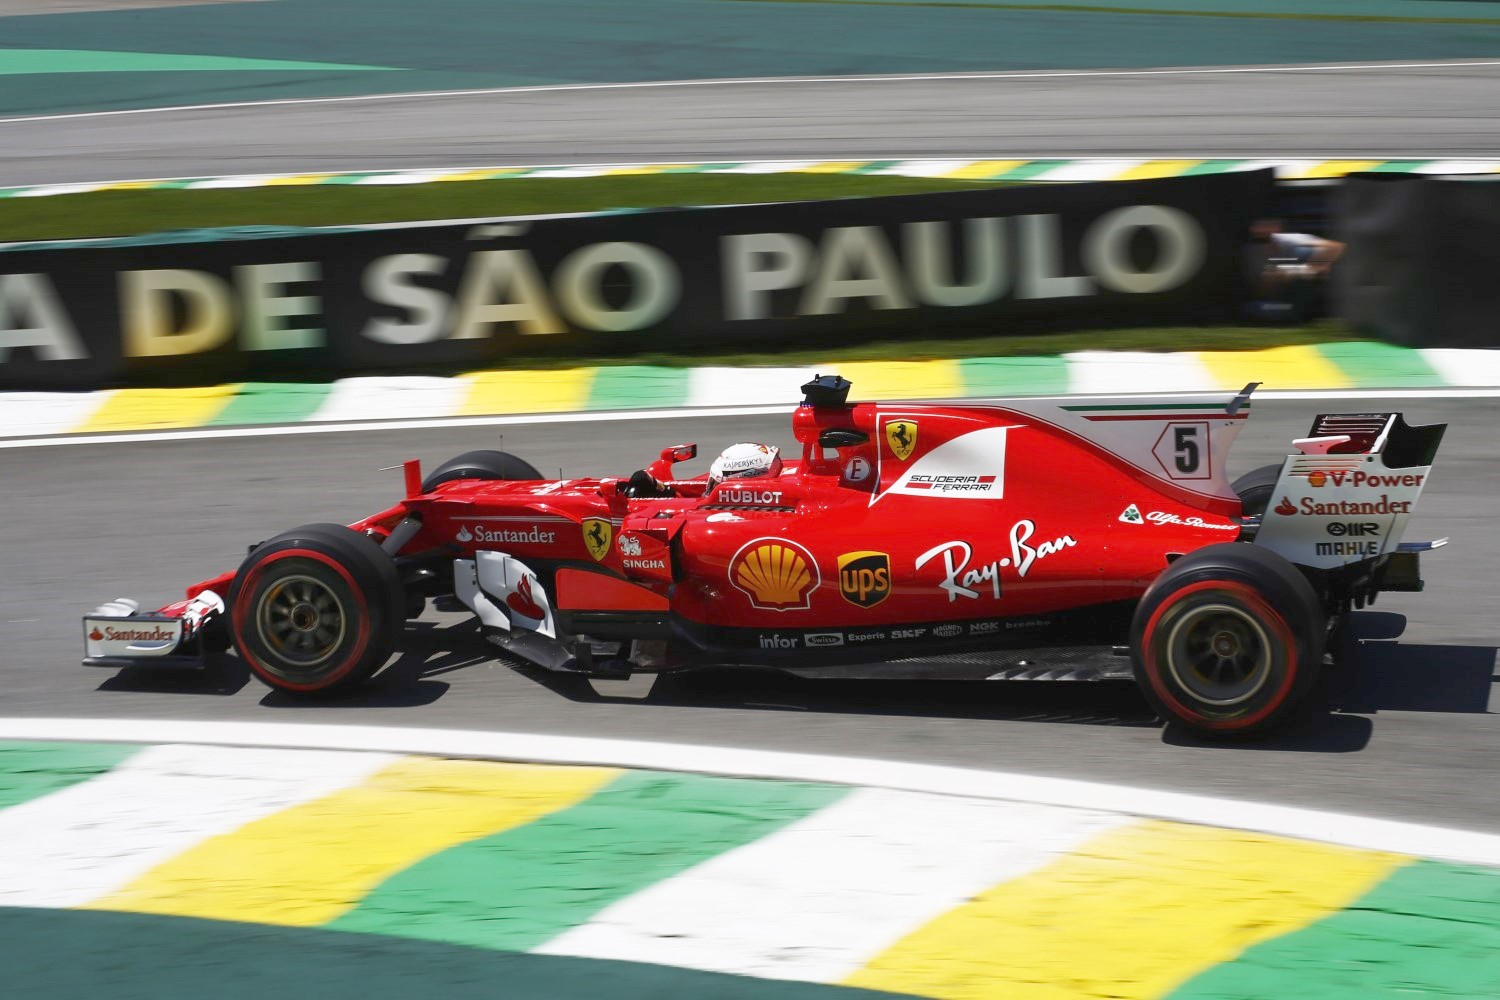 Ferrari can't beat Mercedes in F1 so maybe they should switch to another series